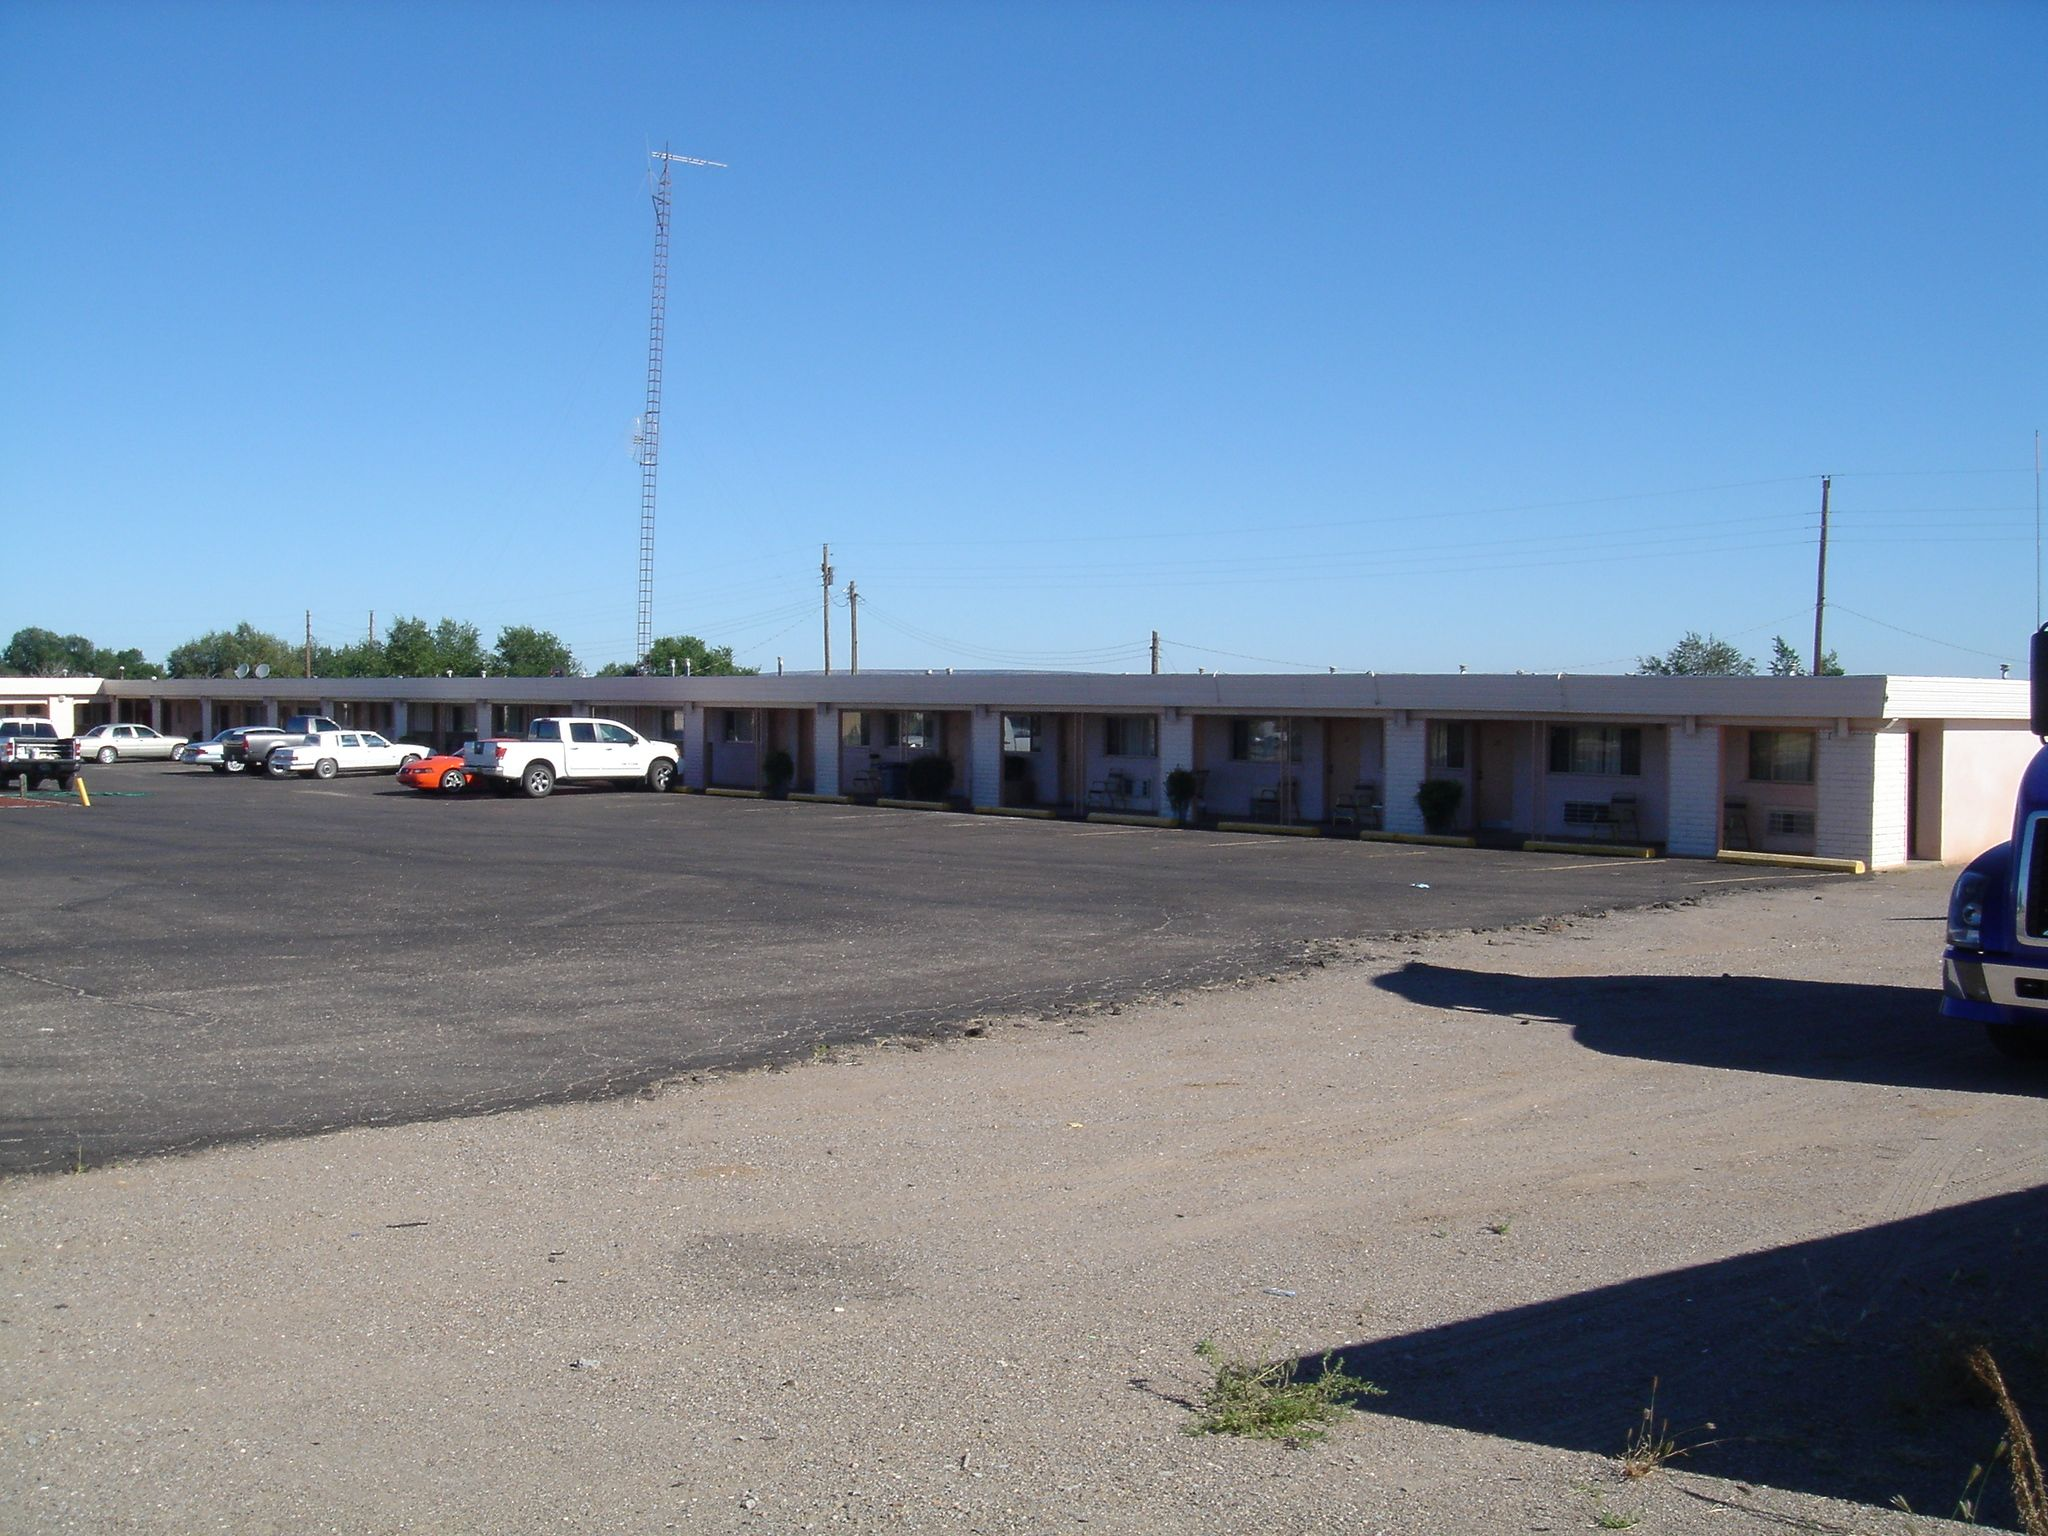 Bel Air Motel